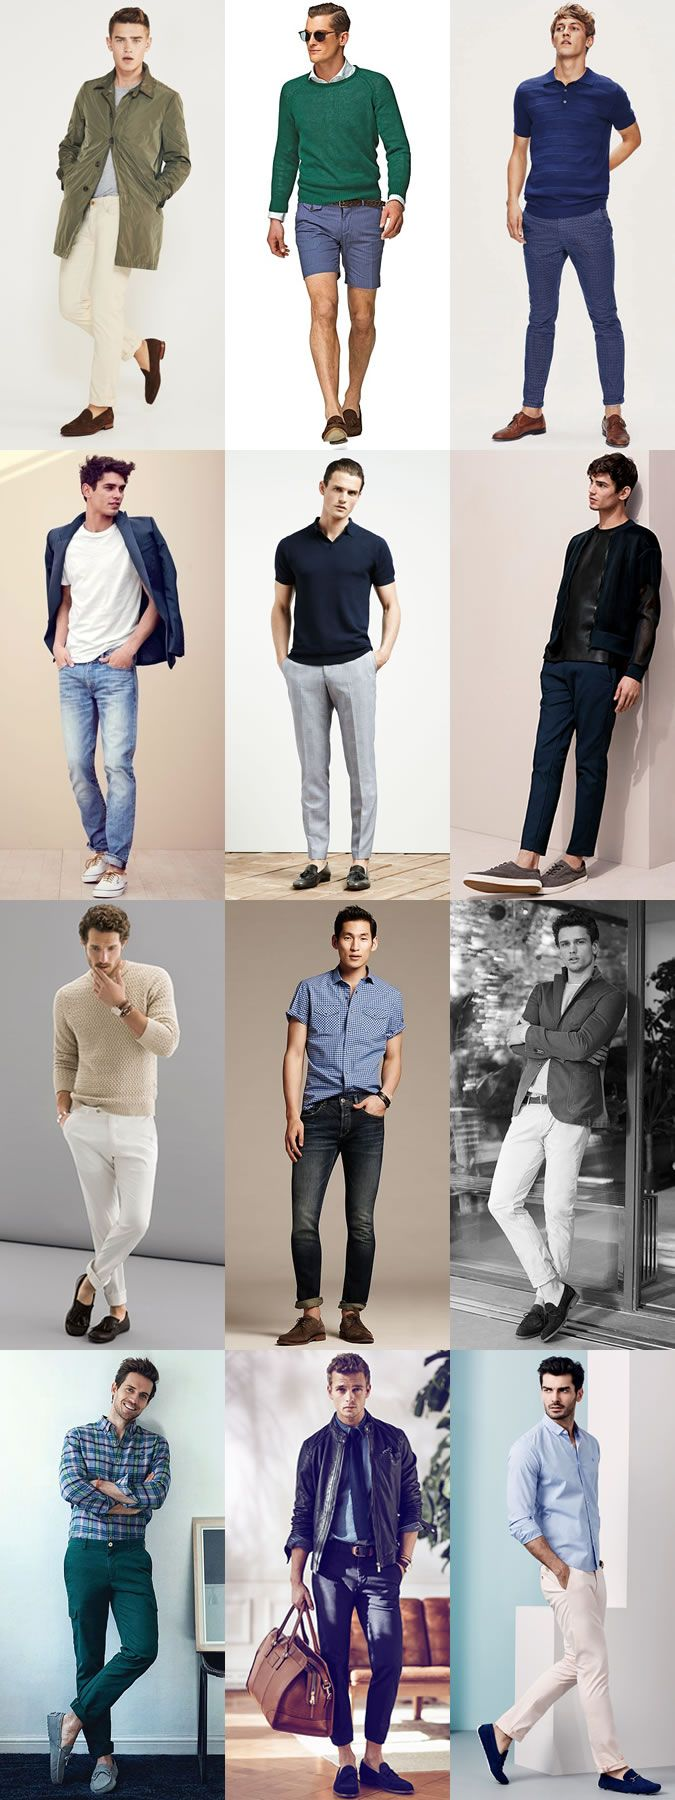 Men's Spring/Summer Sockless Outfit Inspiration Lookbook